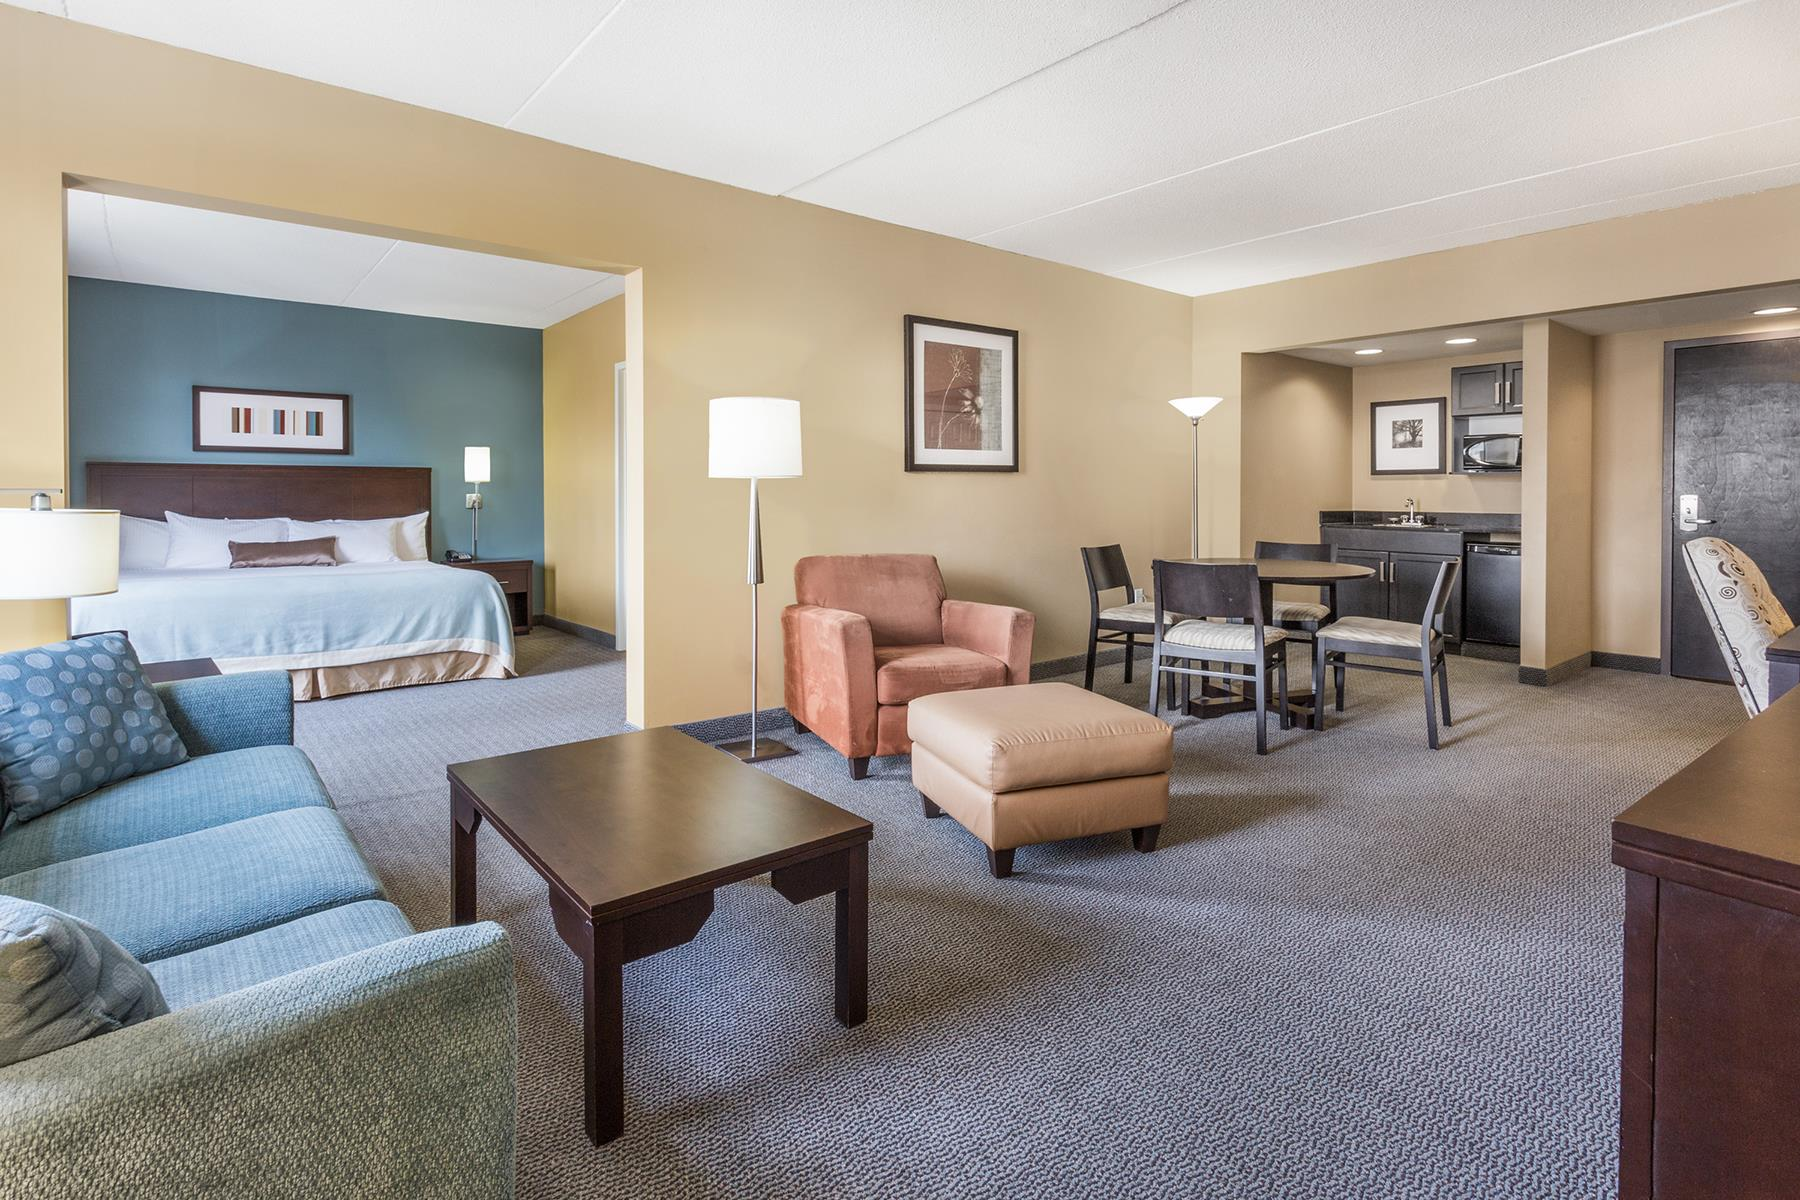 wingate by wyndham regina reviews